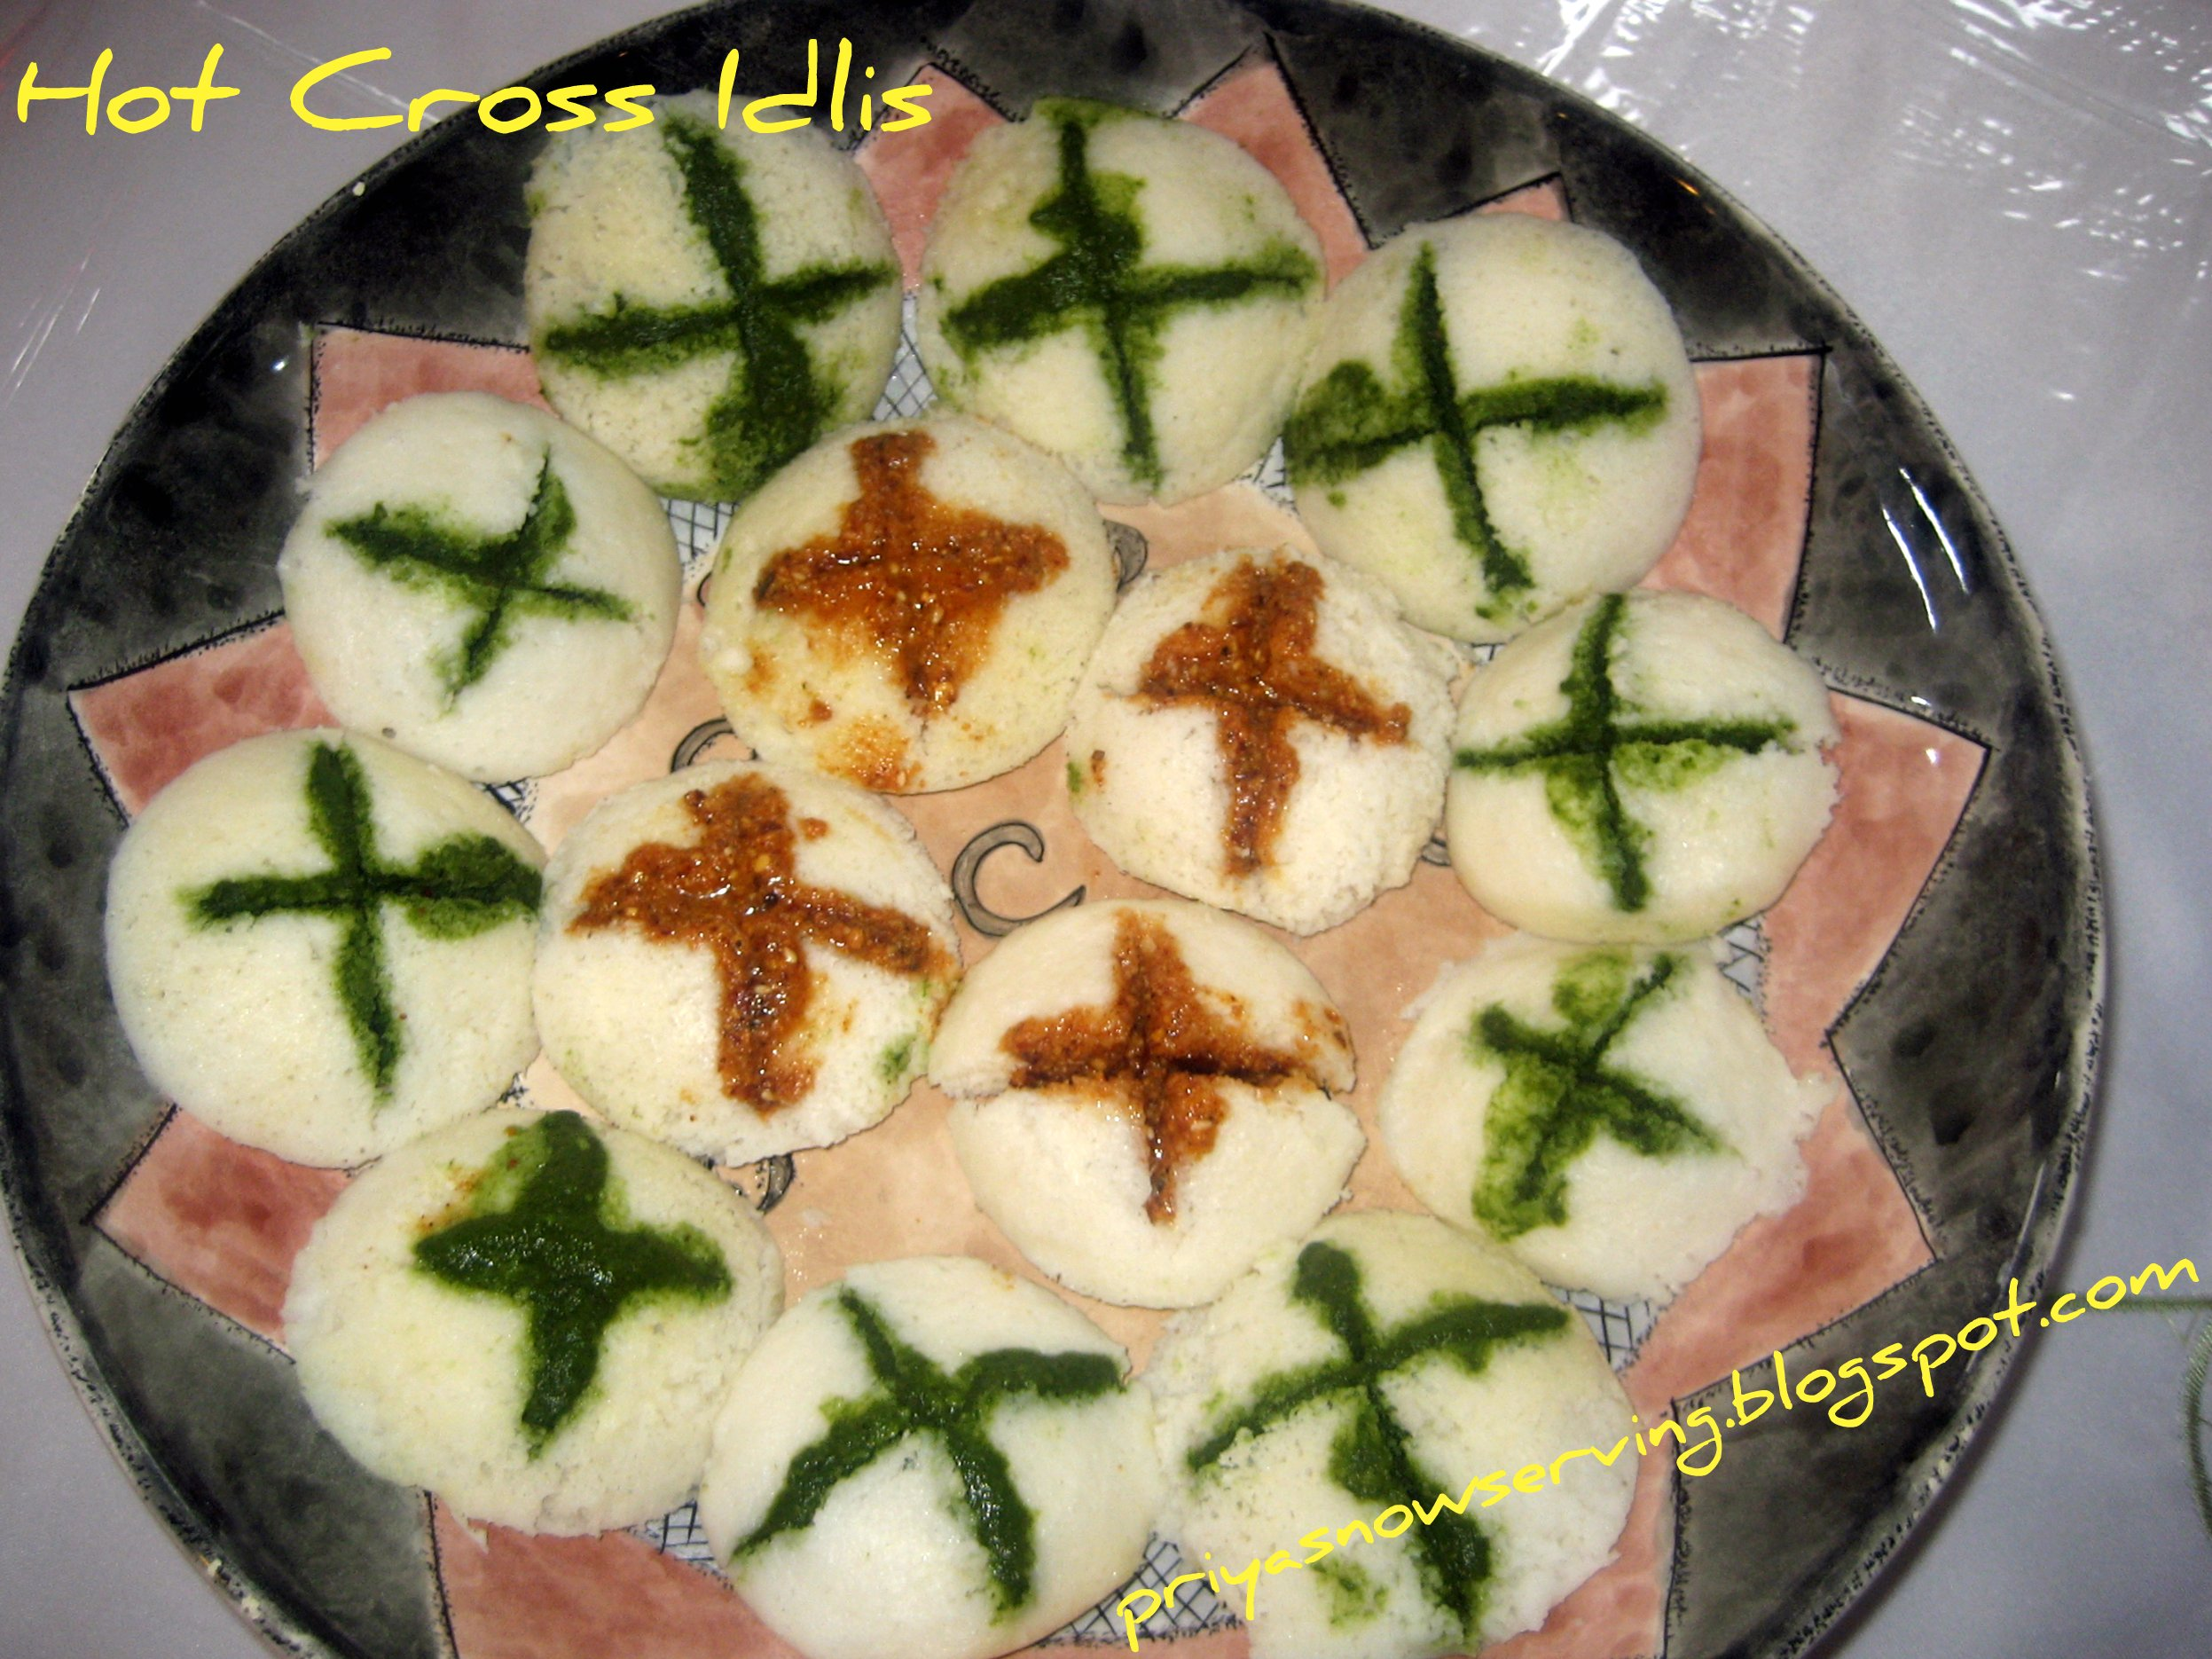 Hot Cross idlis